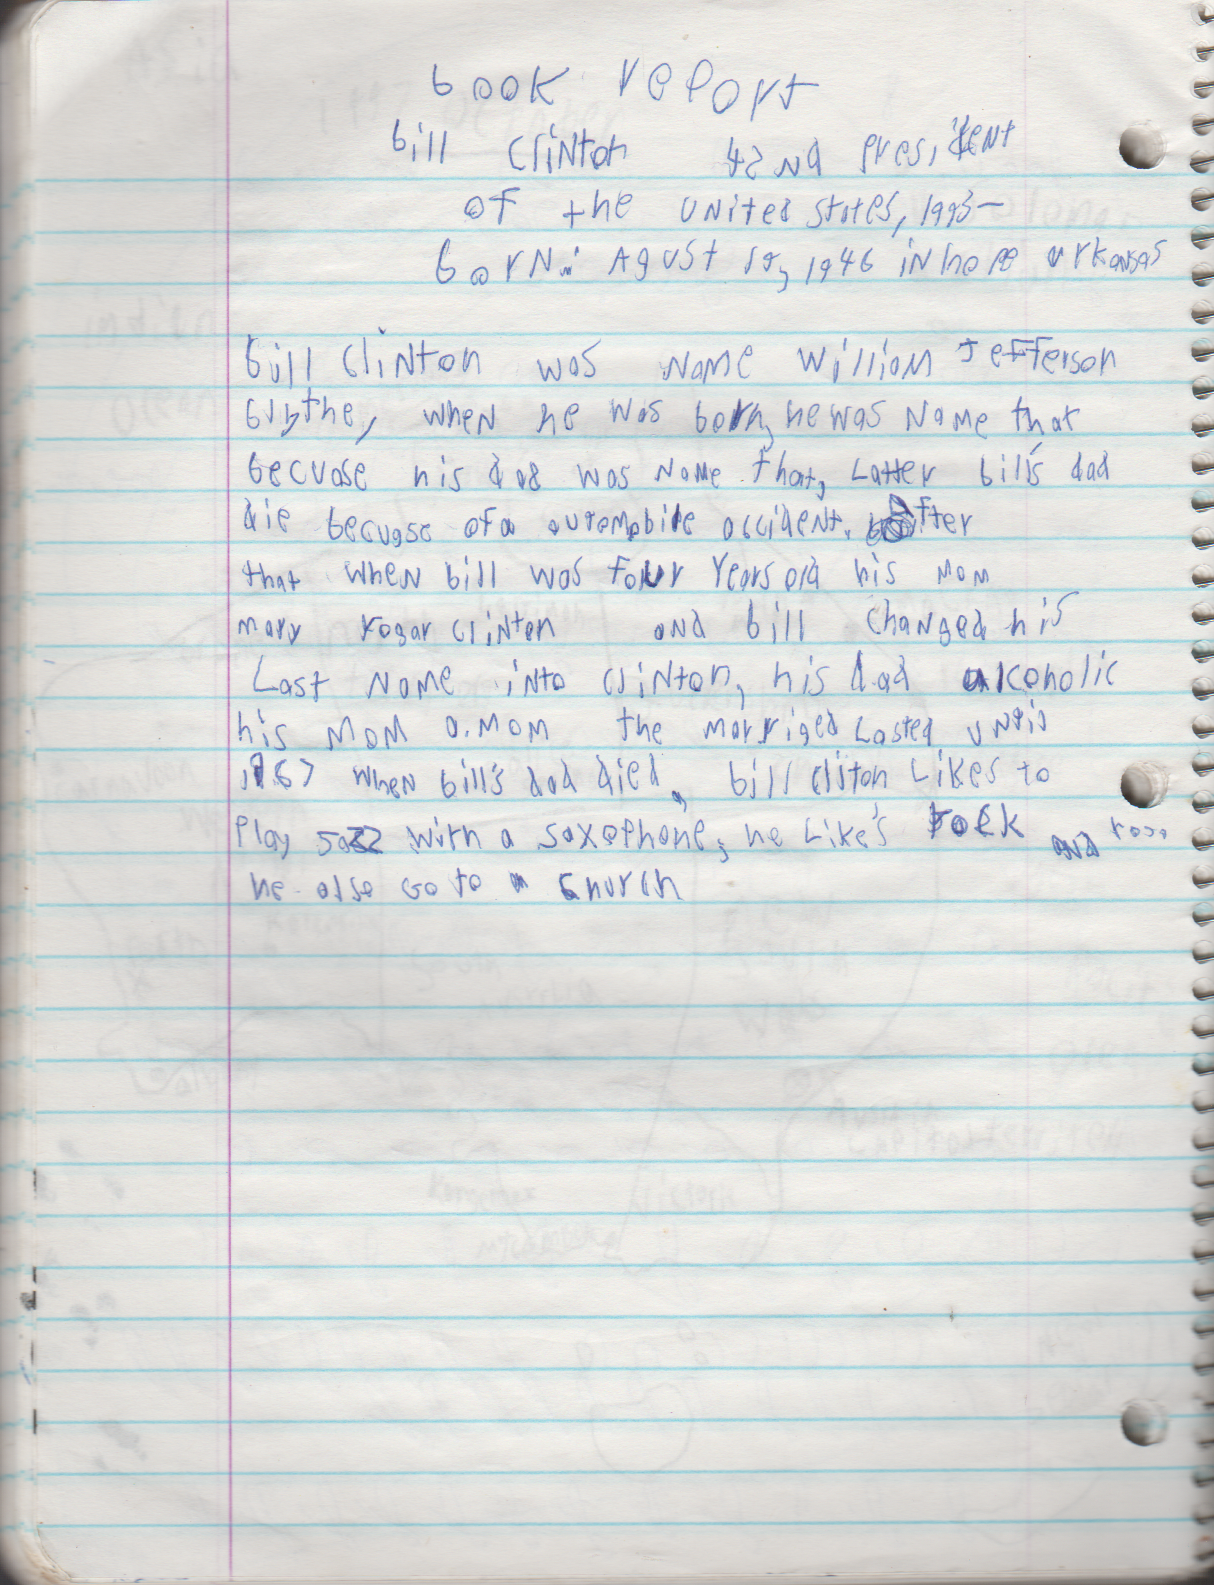 1996-08-18 - Saturday - 11 yr old Joey Arnold's School Book, dates through to 1998 apx, mostly 96, Writings, Drawings, Etc-097.png